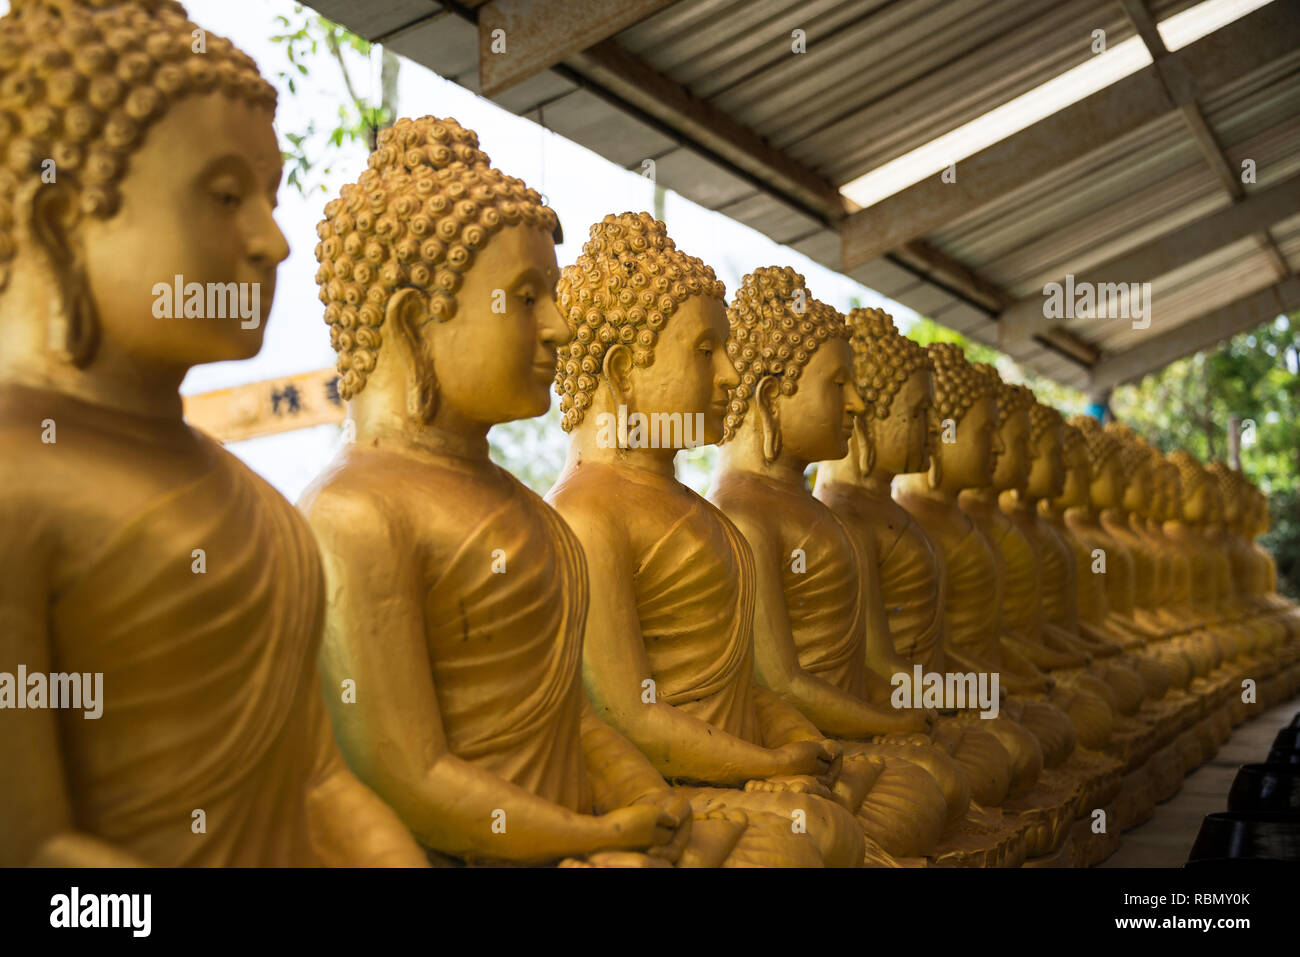 Golden statues on the island of Phuket Thailand. Day 19 December 2018 Stock Photo